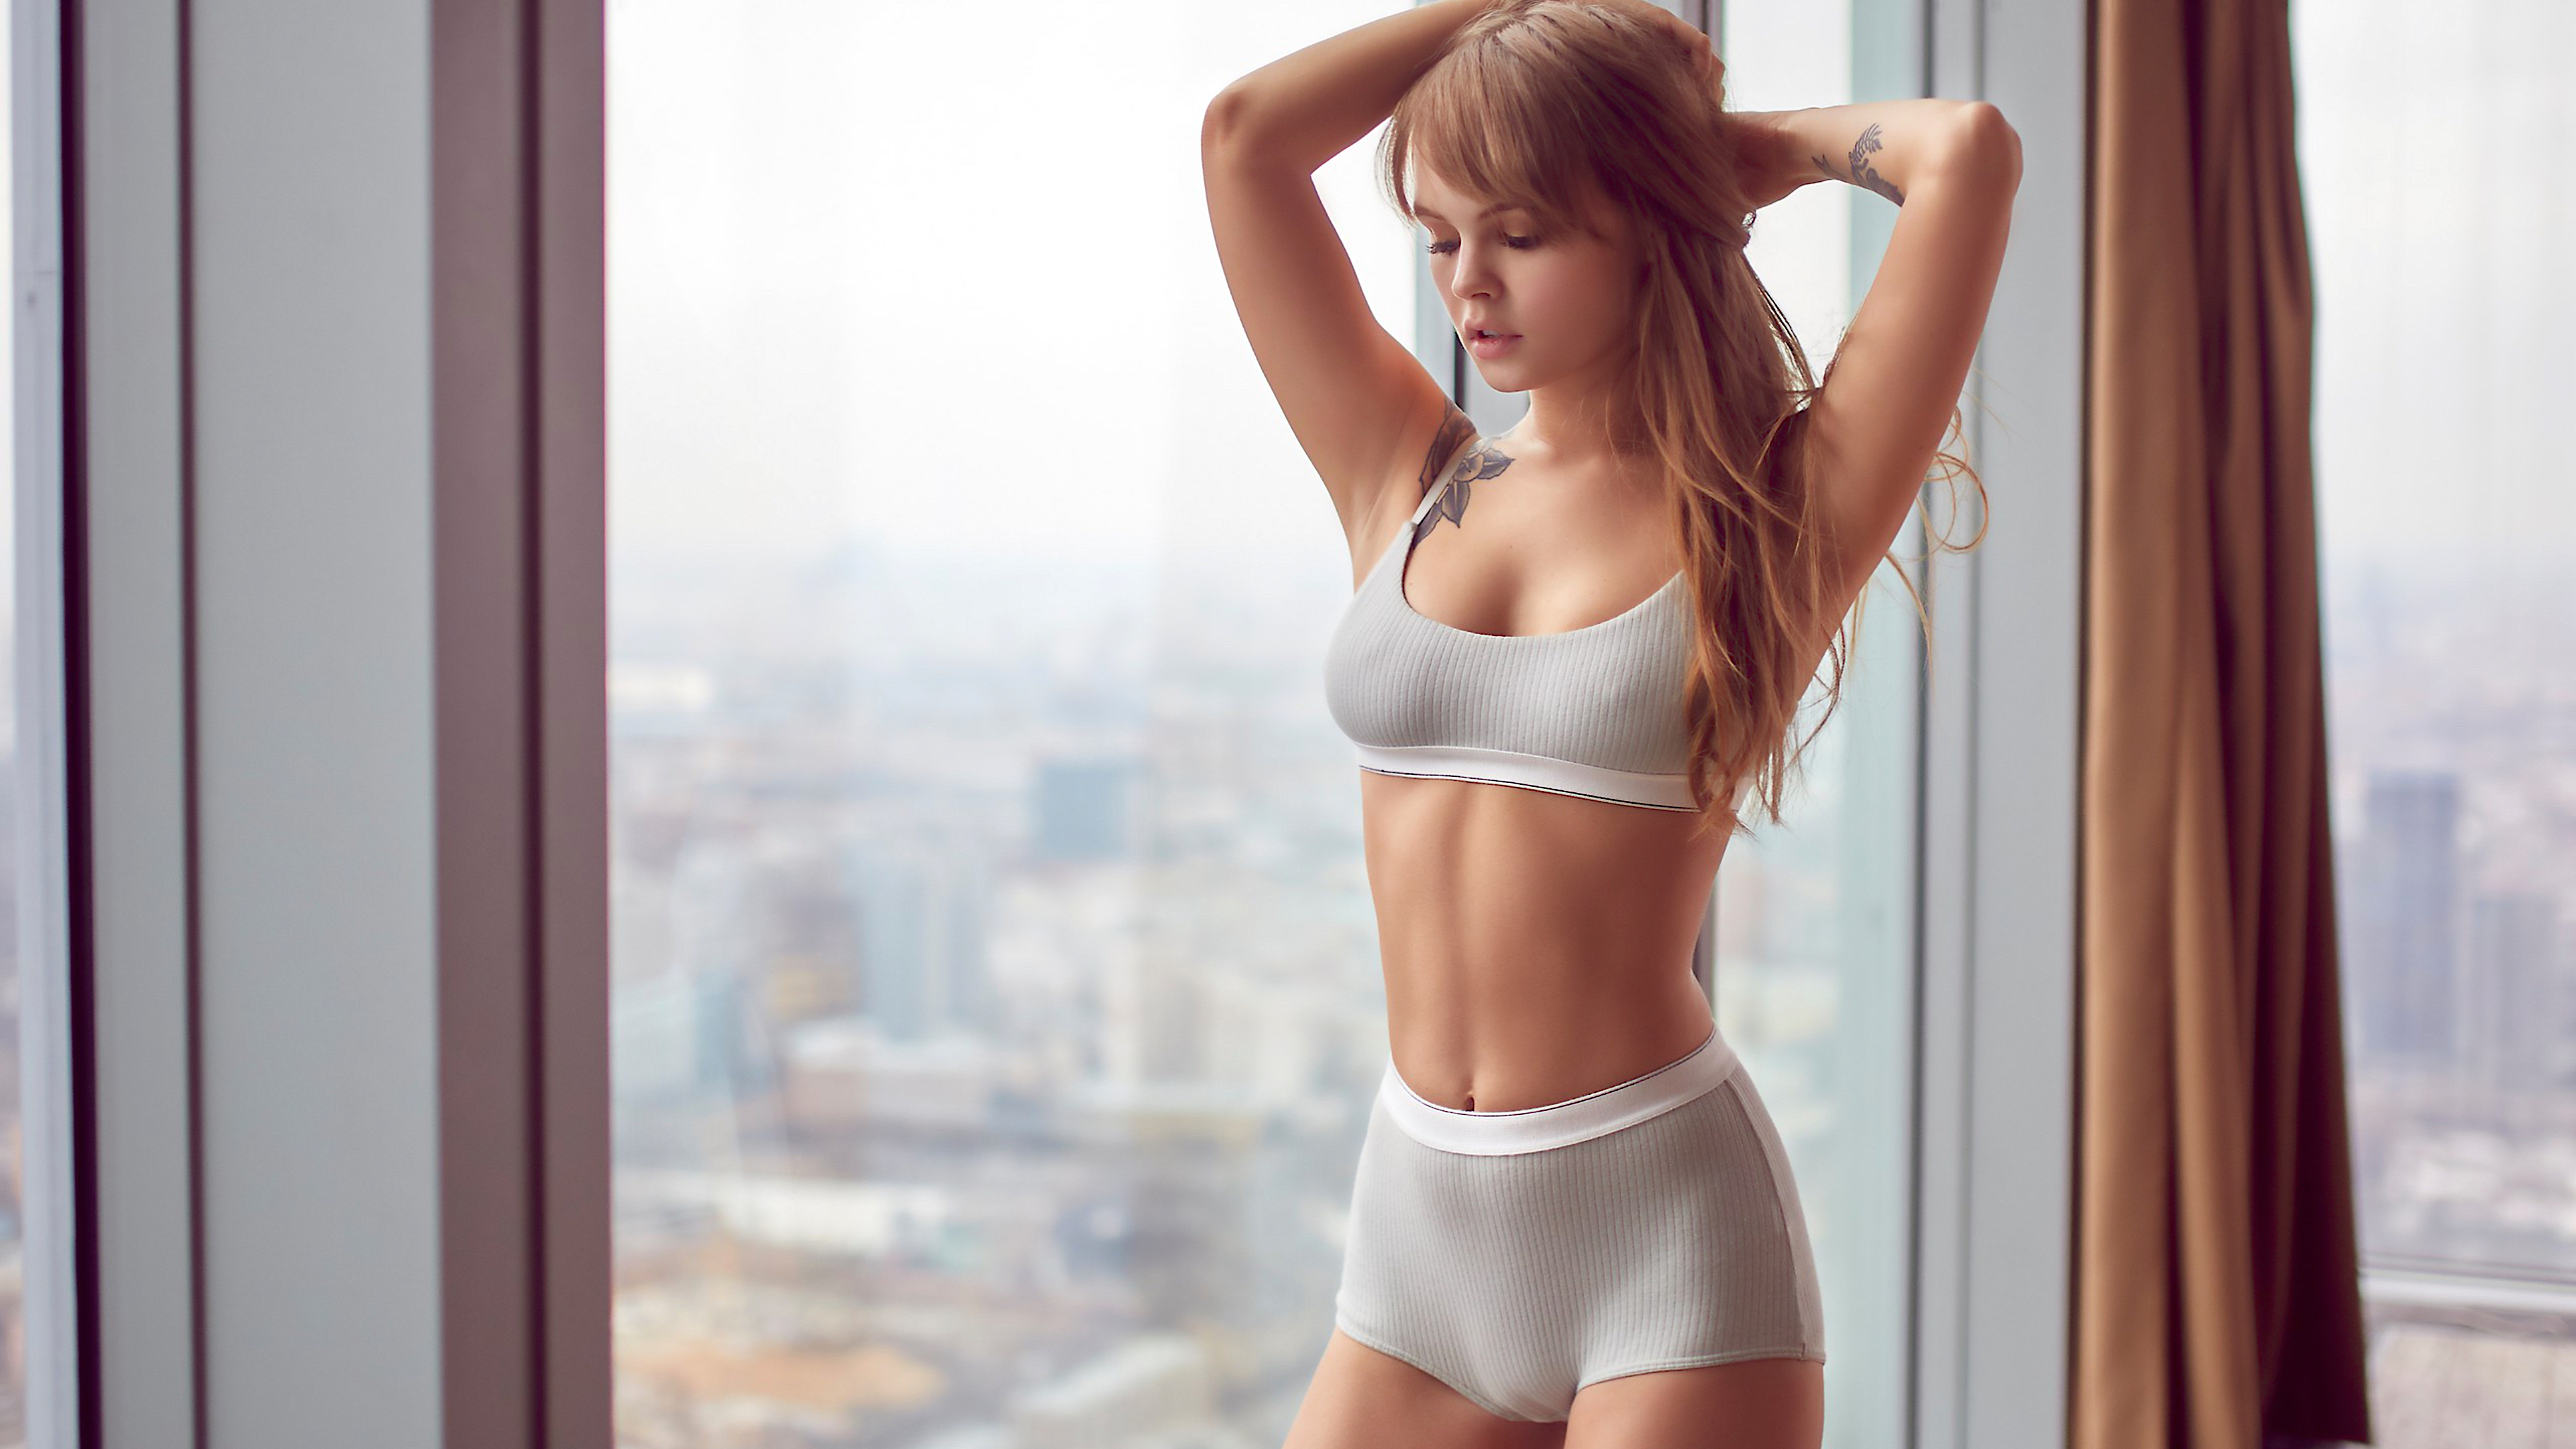 84 camel toe hd wallpapers and photos - ftopx